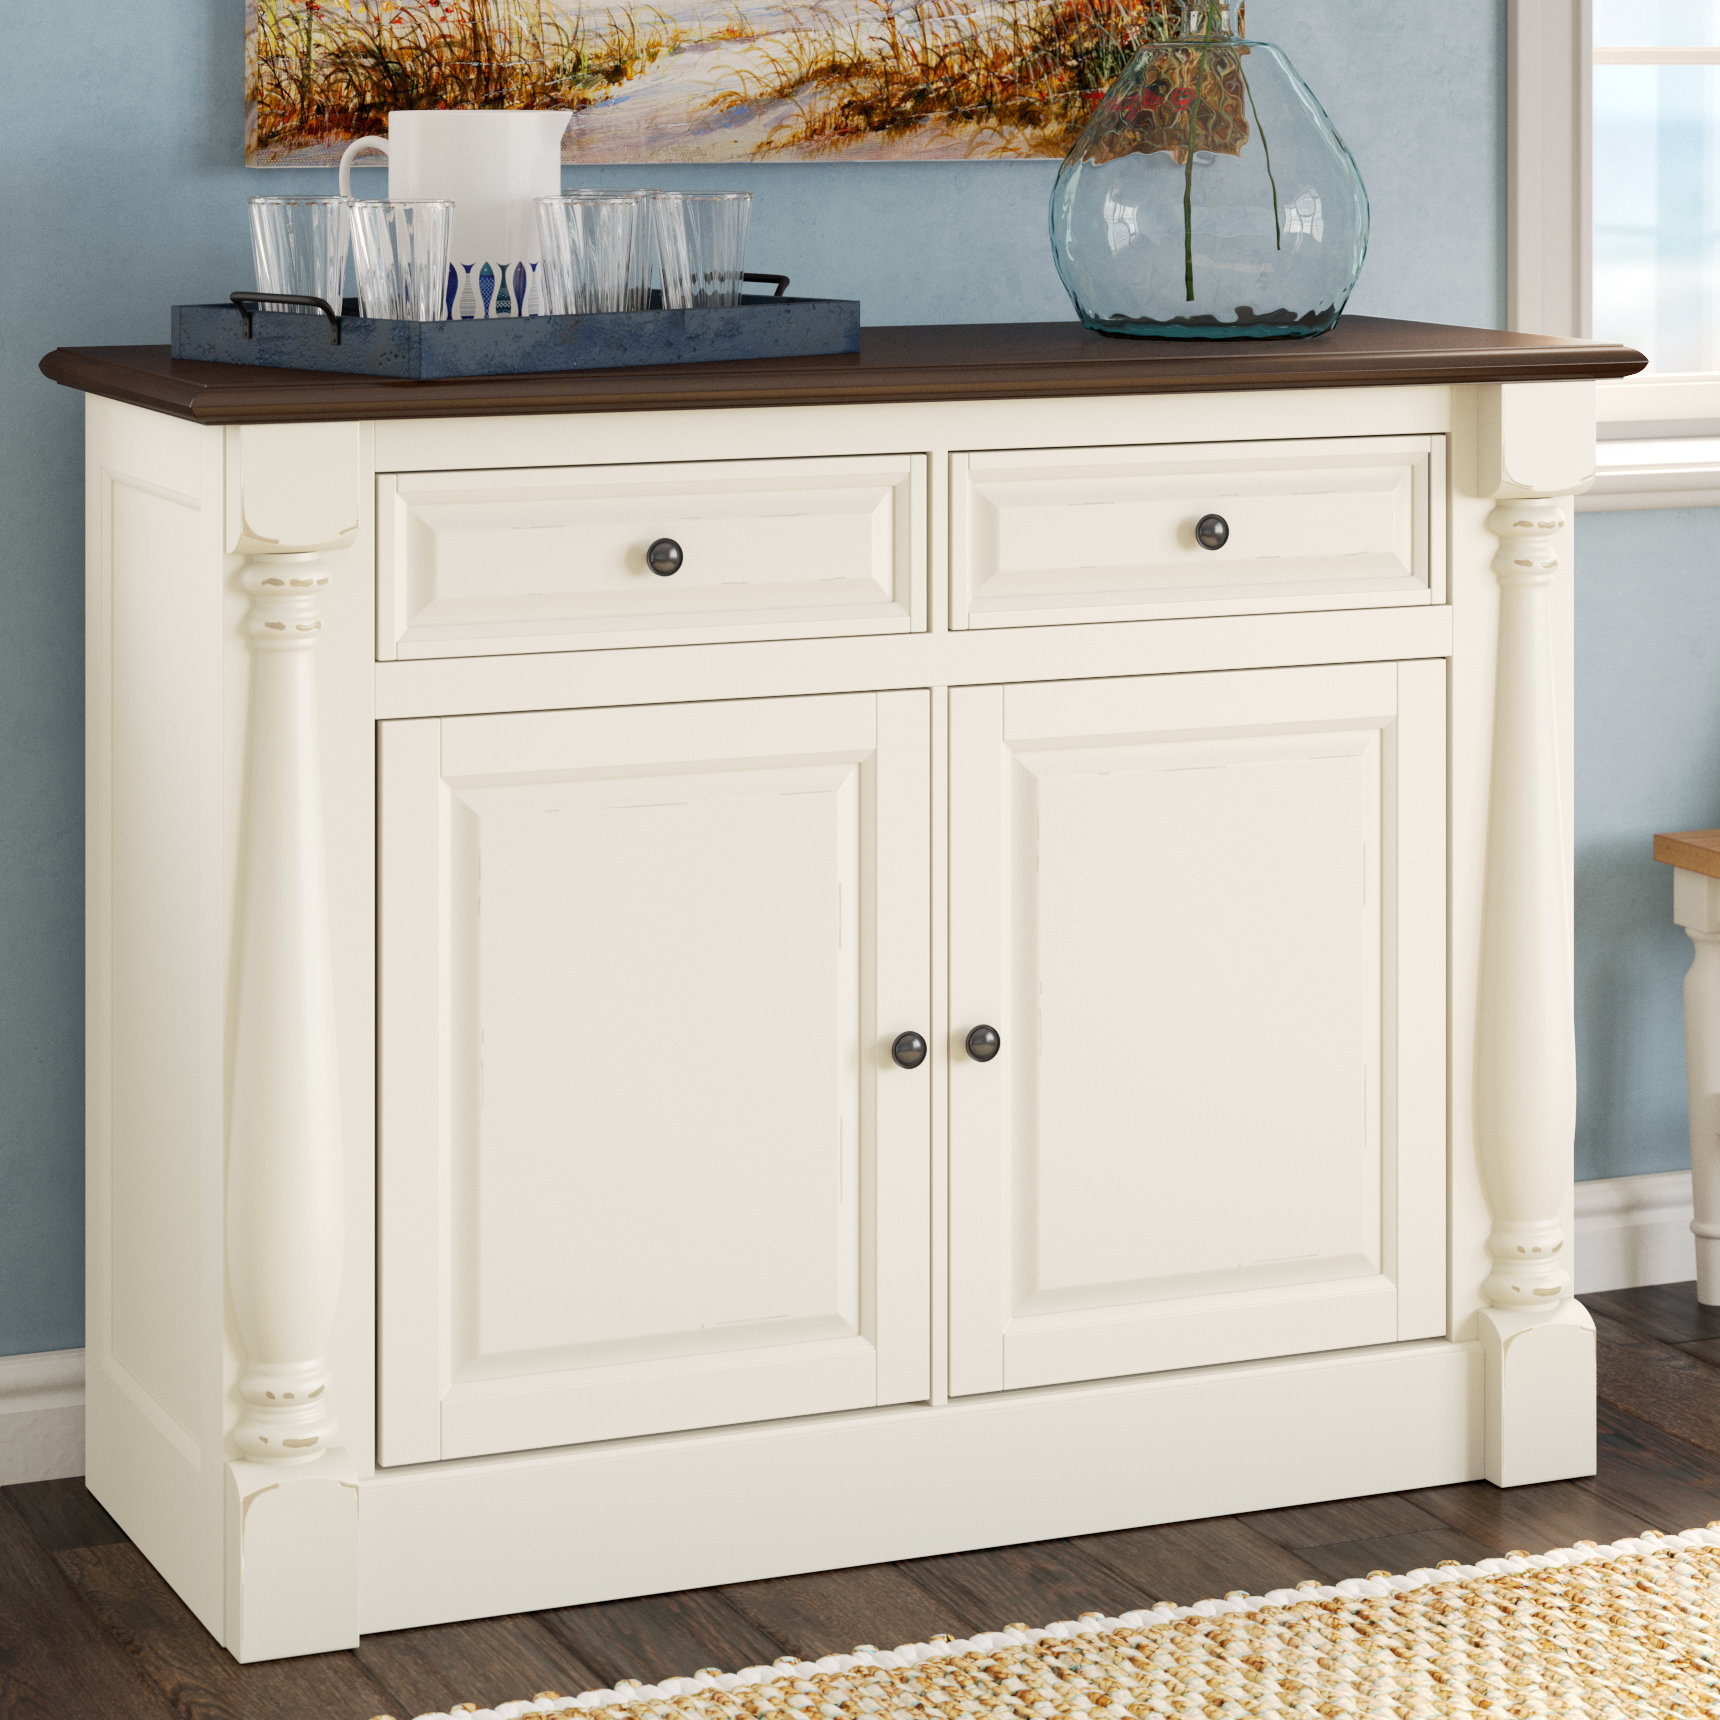 Farmhouse & Rustic Sideboards & Buffets | Birch Lane Throughout Elyza Credenzas (View 14 of 20)